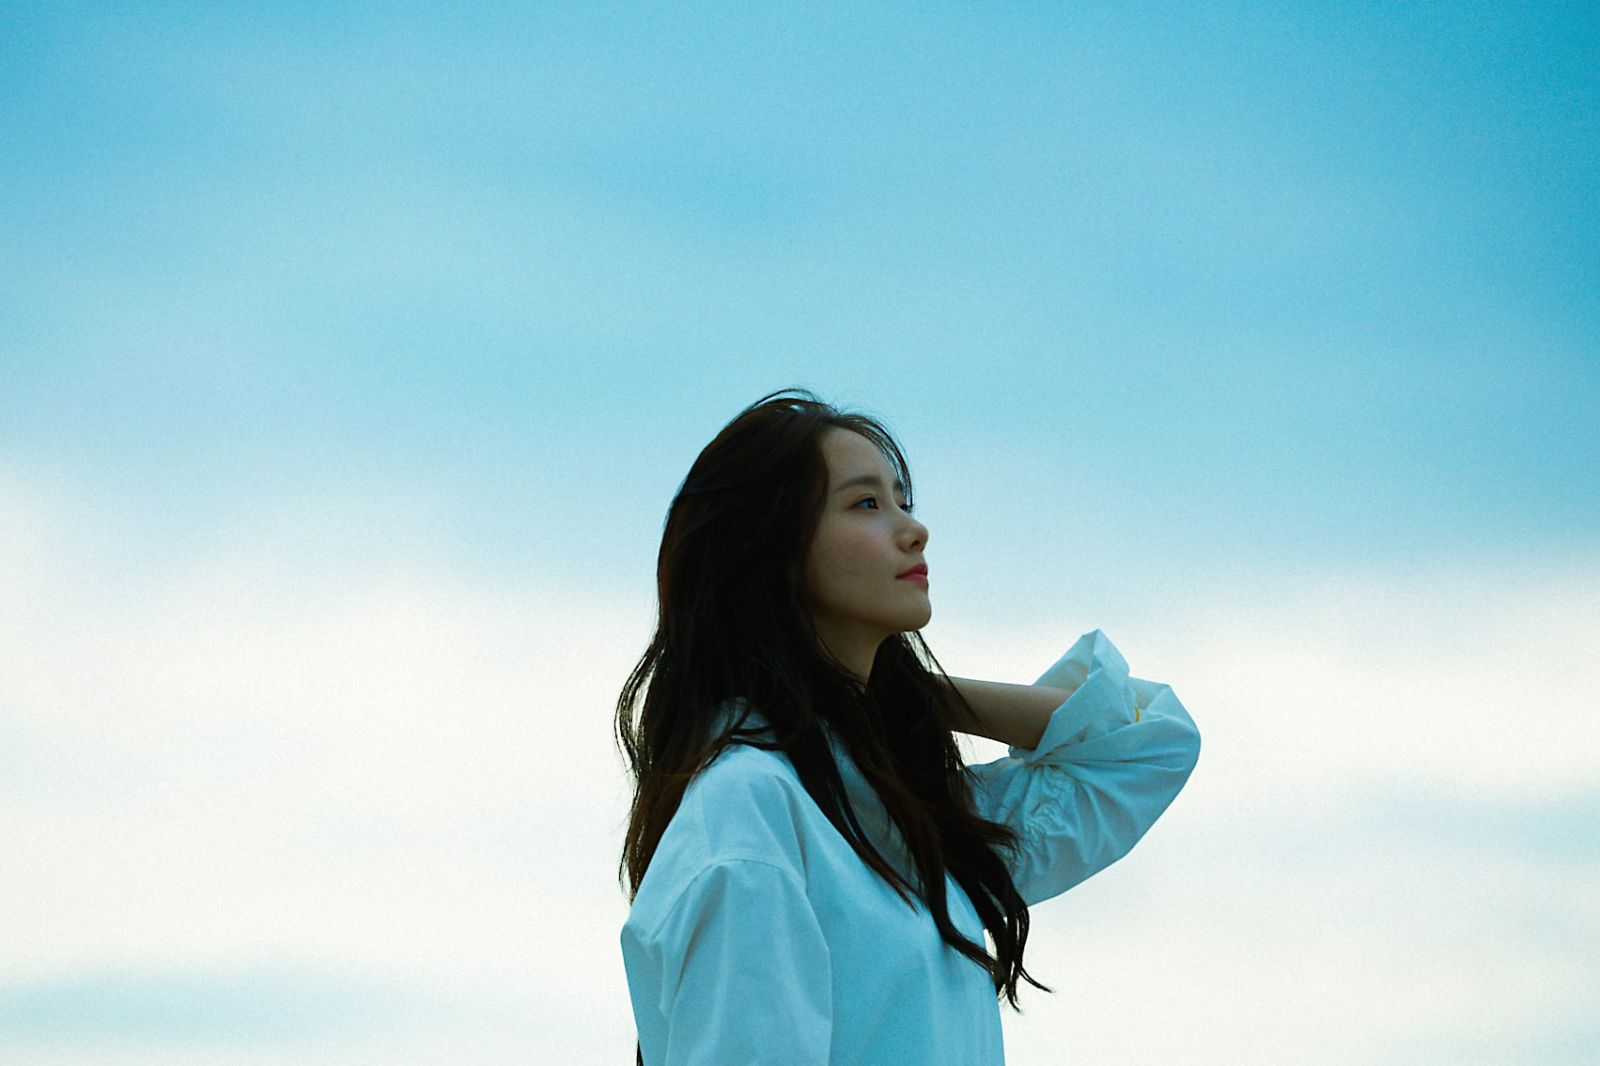 yoona when the wind blow